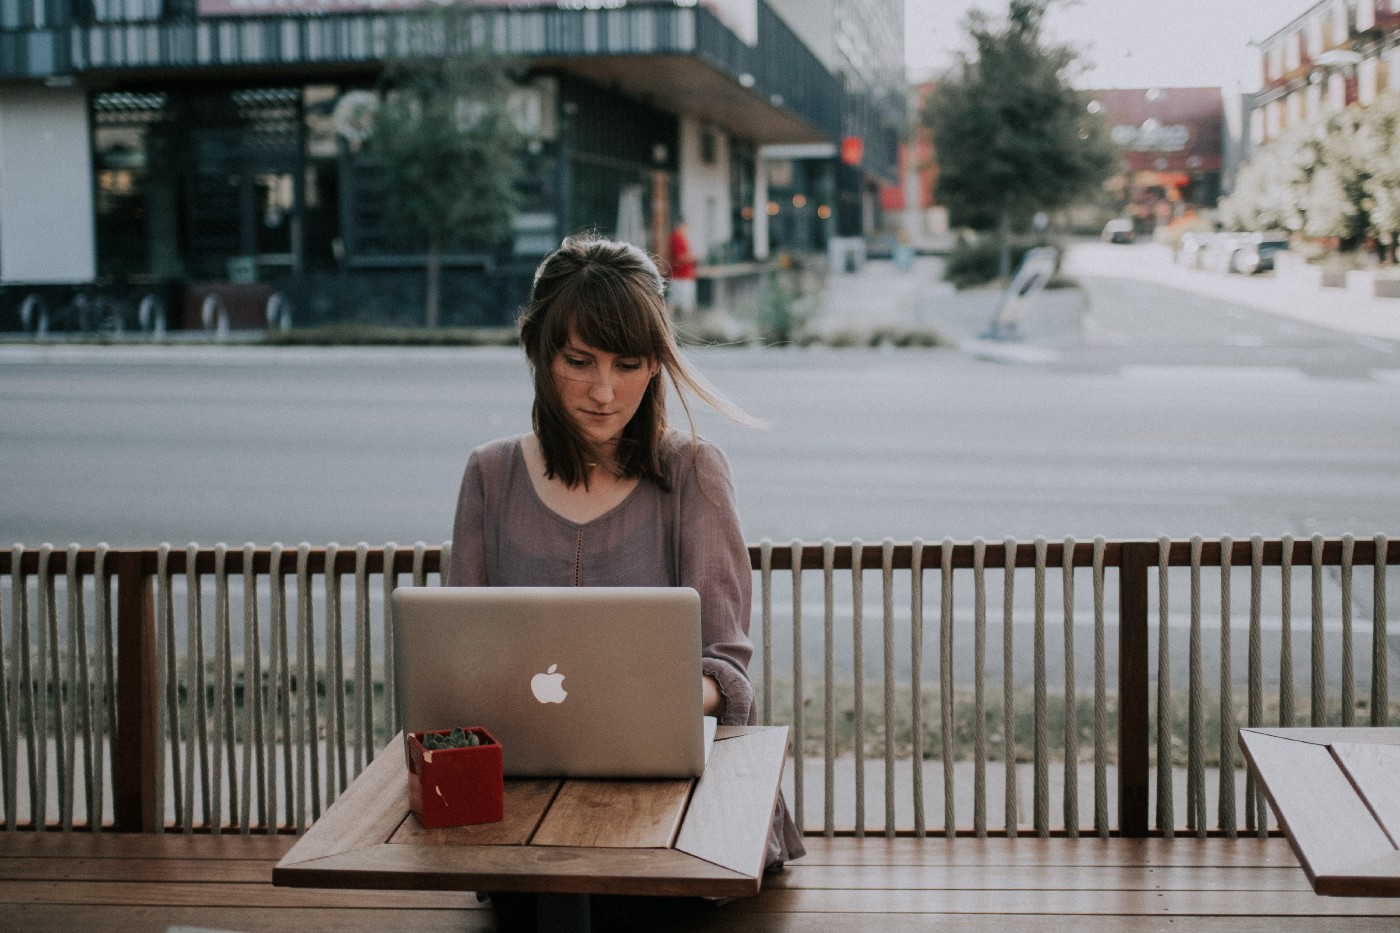 A woman sits outside and works on her laptop.